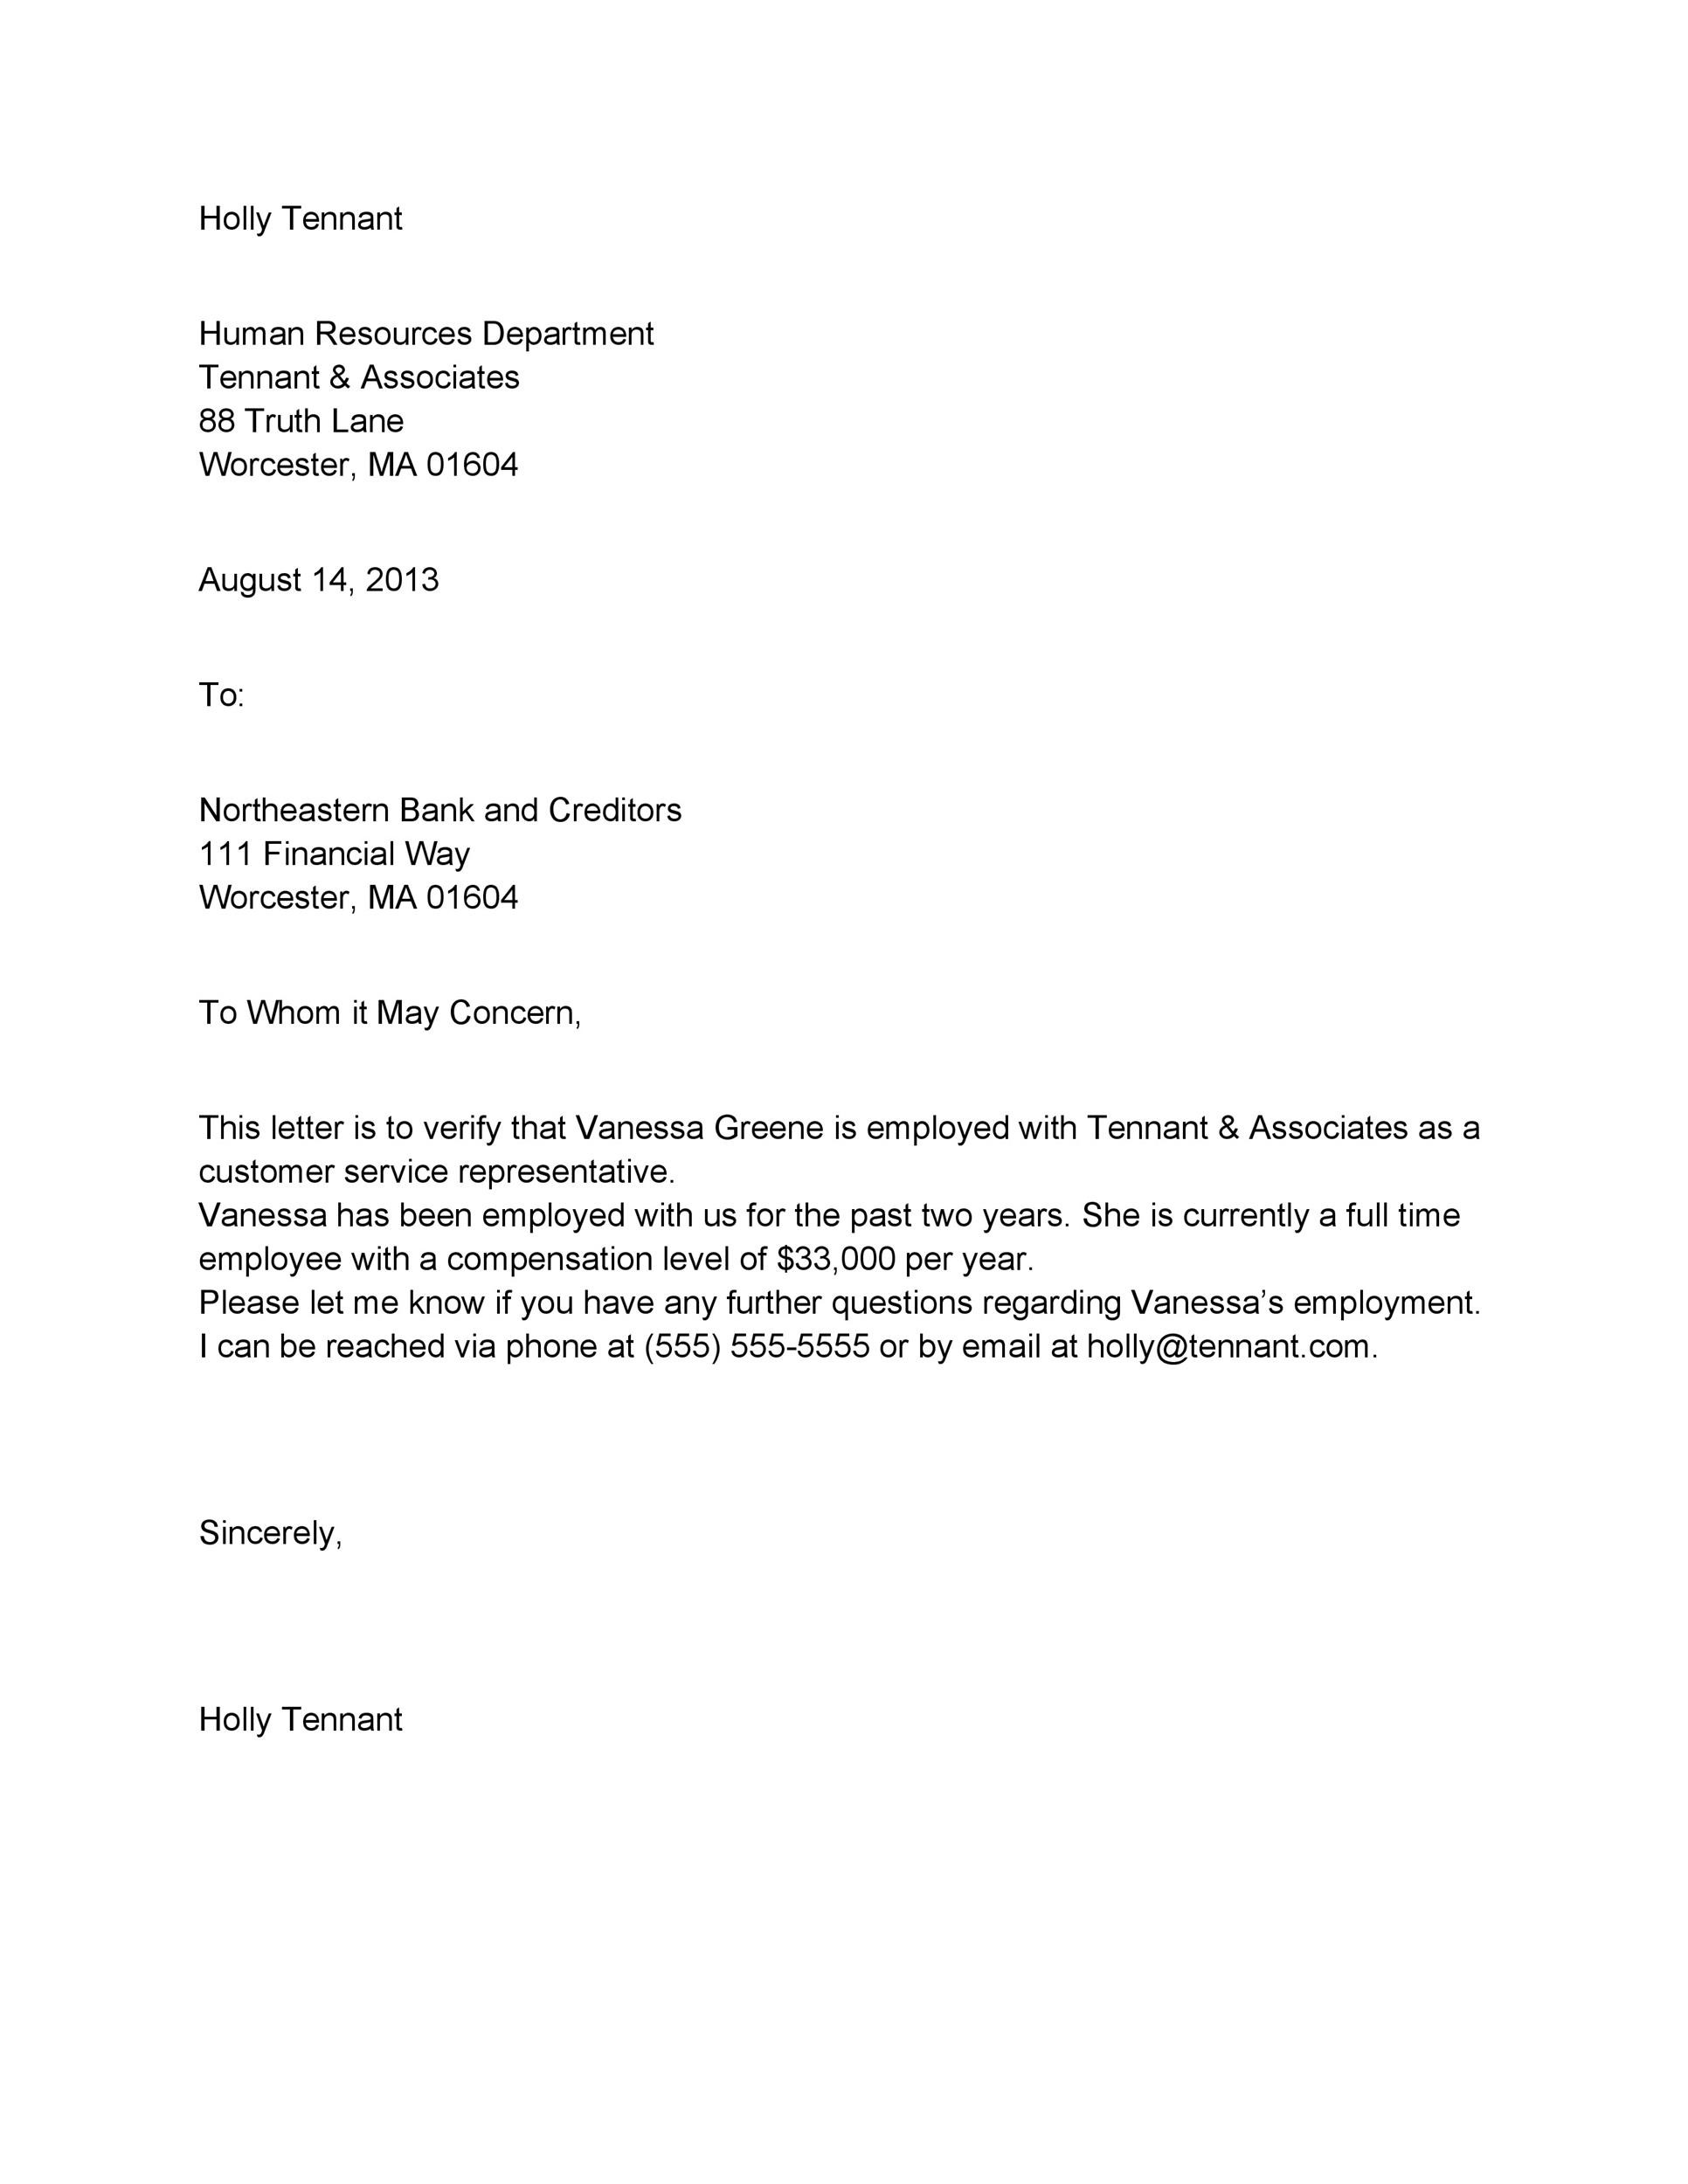 Free Proof of Employment Letter Template 33